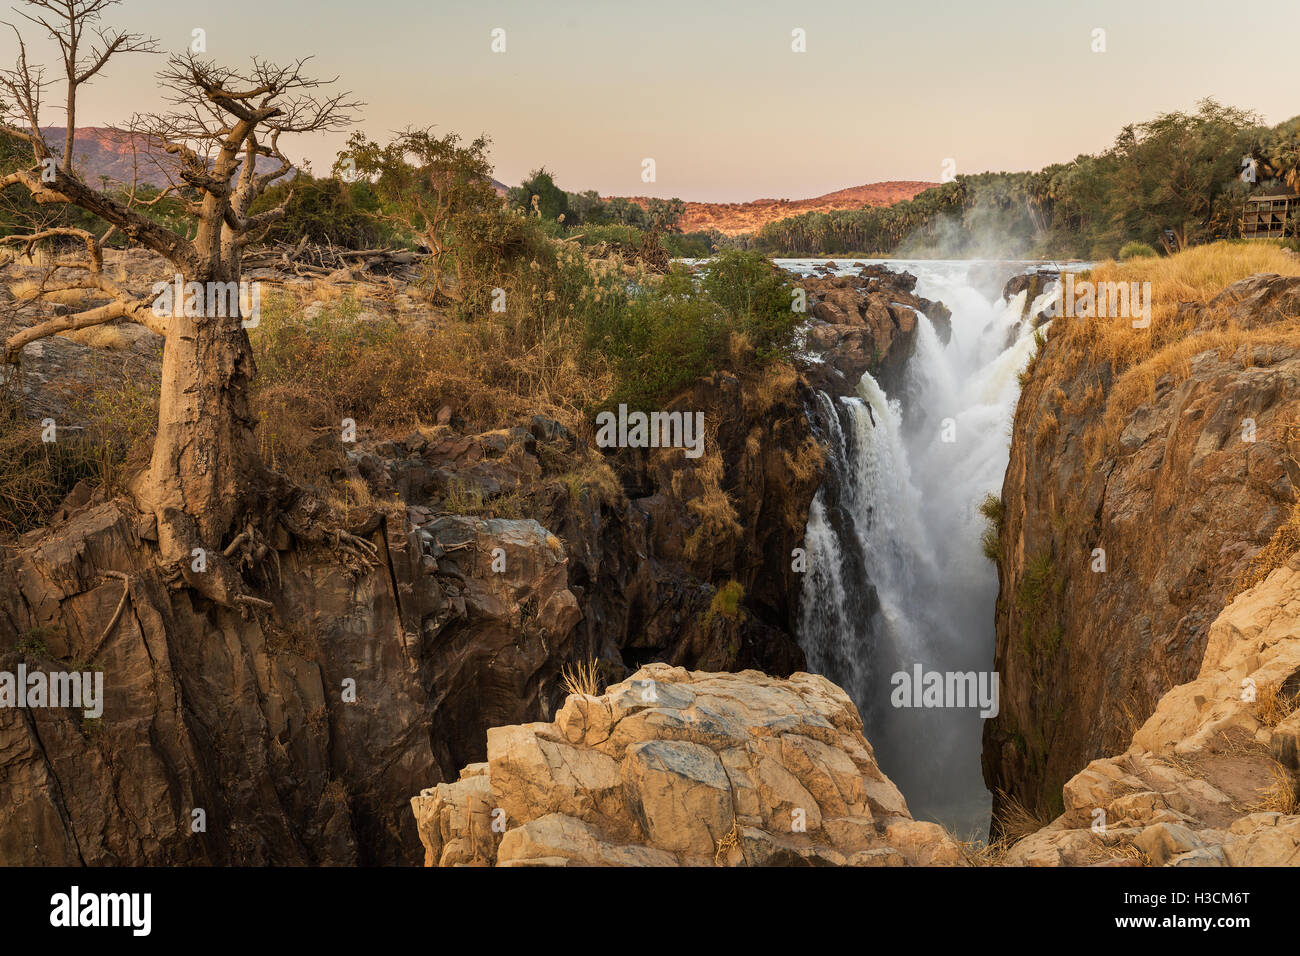 A baobab clings to the edge of the gorge of Epupa falls, on the Kunene river in the Kaokoveld of northern namibia. - Stock Image